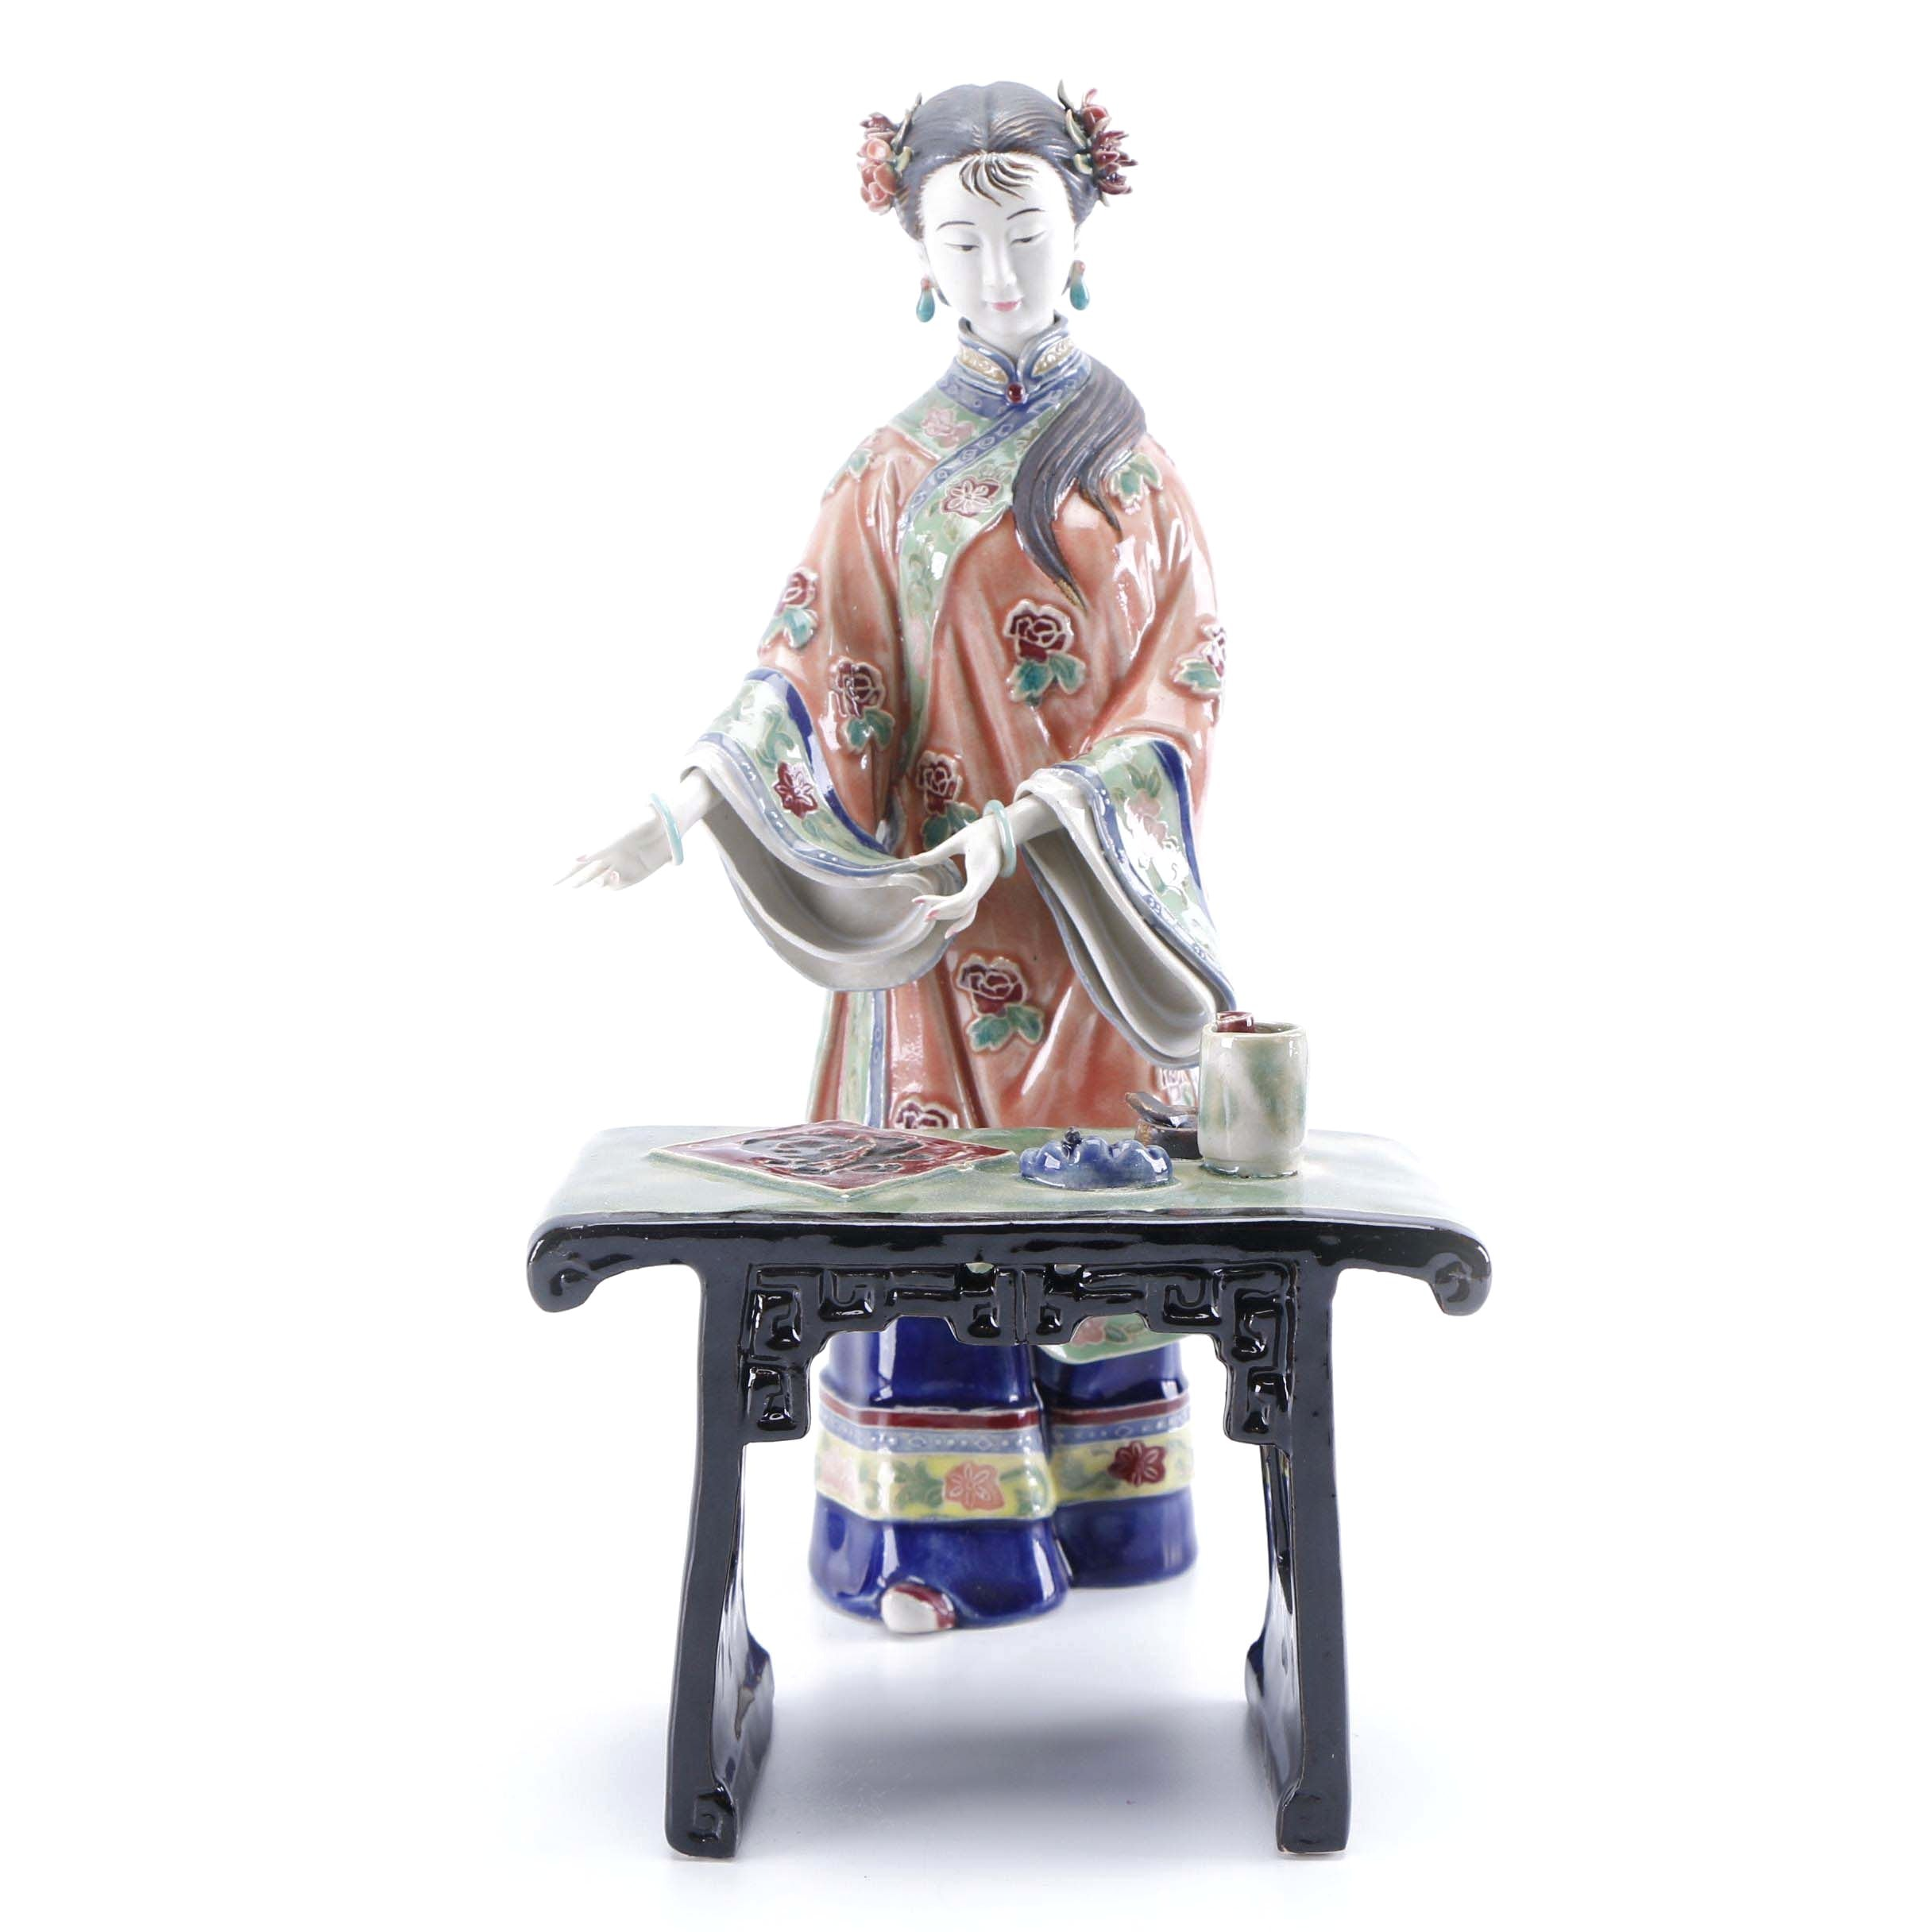 Chinese Style Porcelain Figurine of Woman and Calligraphy Set